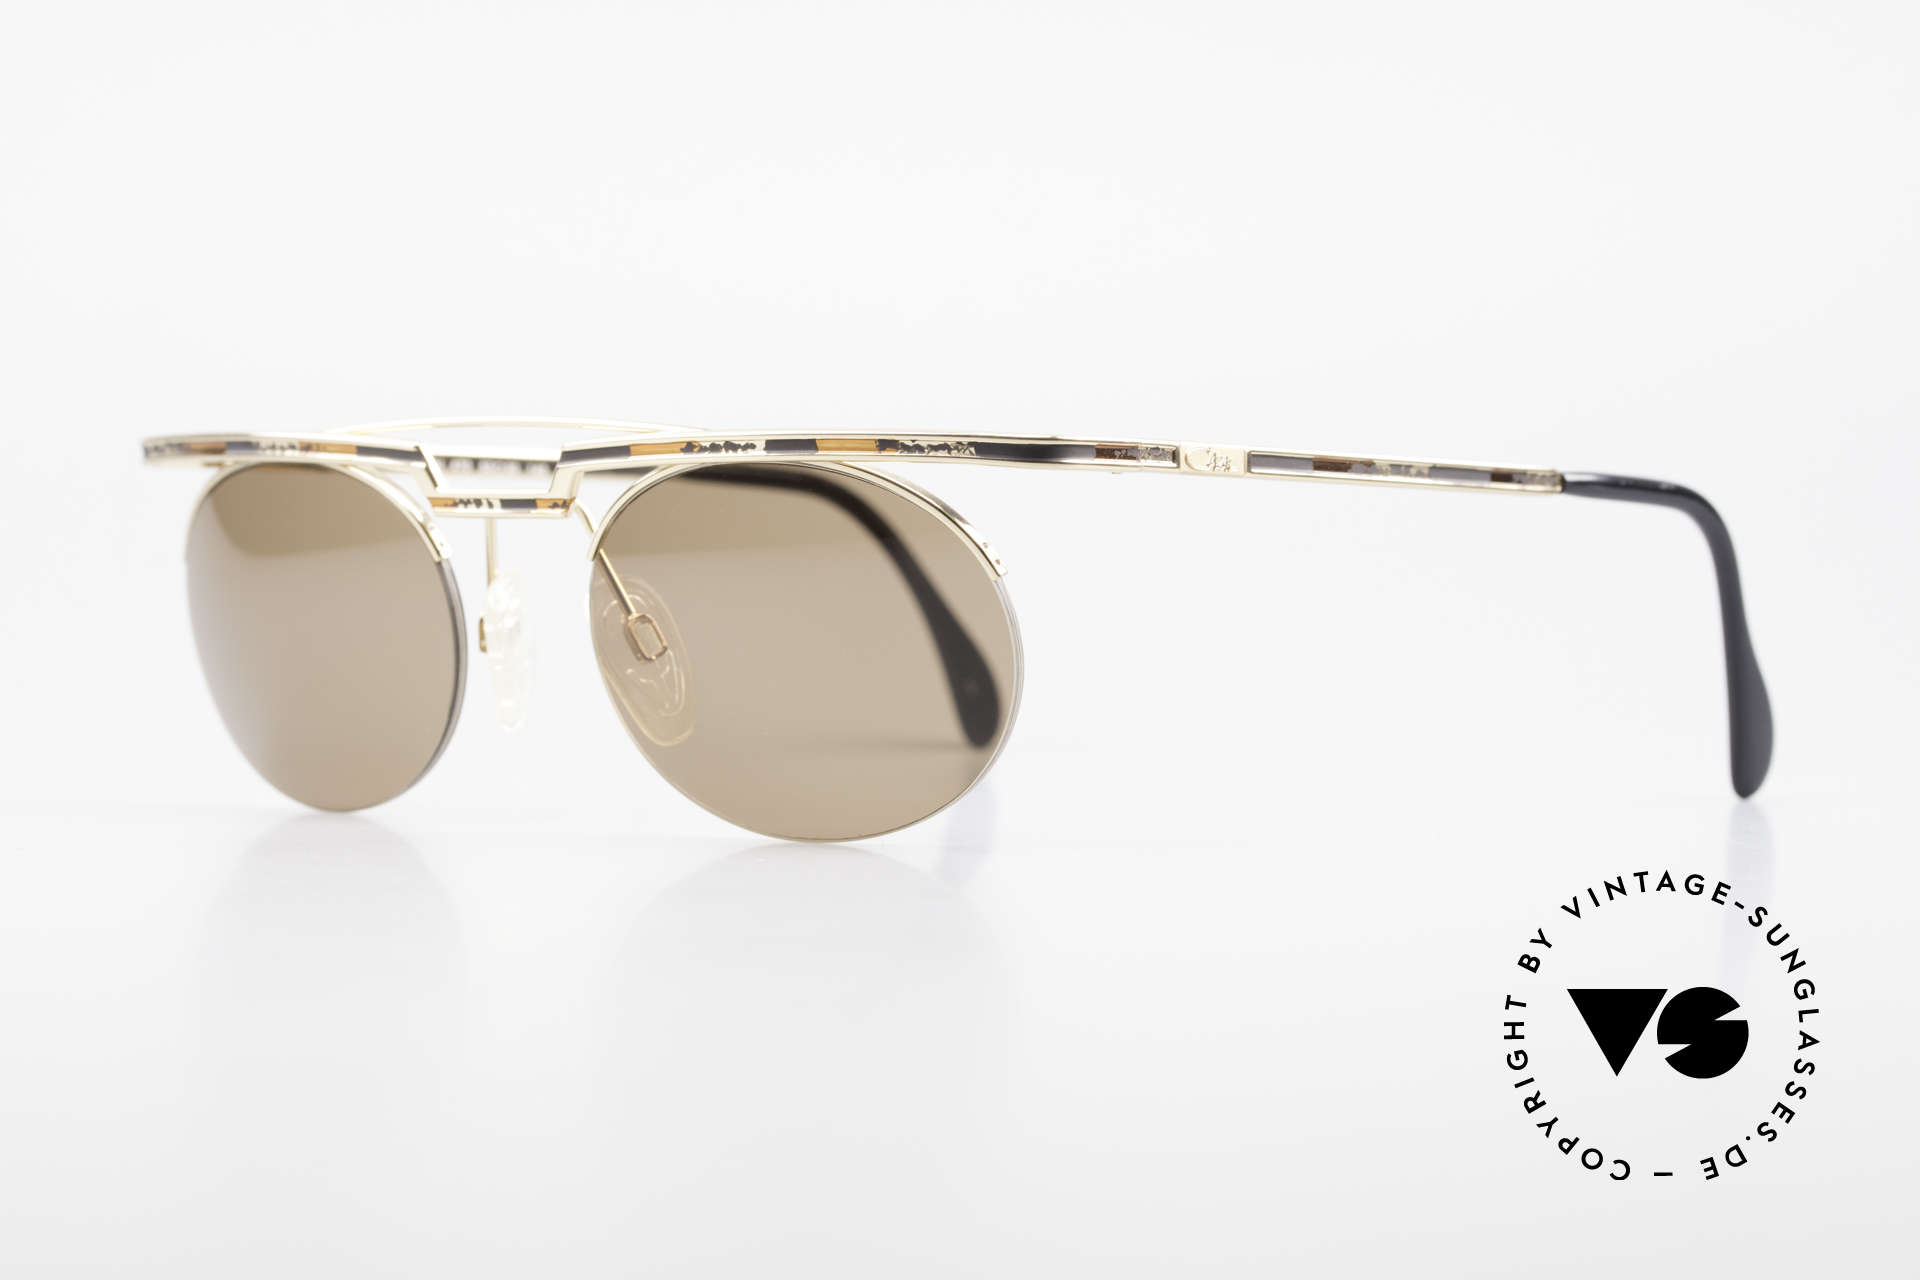 Cazal 758 Original Cazal Sunglasses 90's, costly varnishing (characteristical for all vintage Cazals), Made for Men and Women